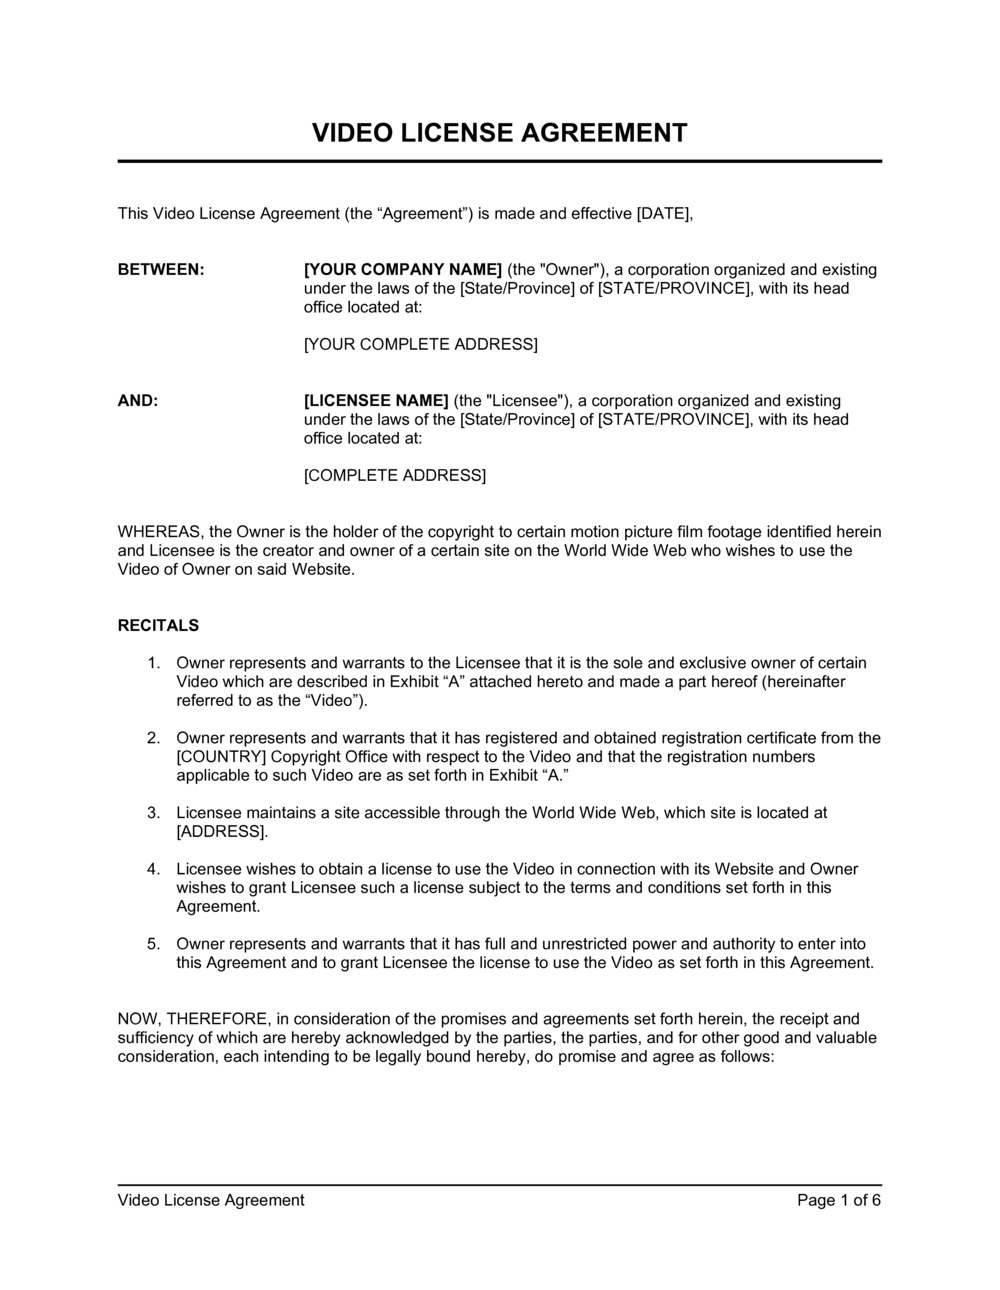 Business-in-a-Box's Video License Agreement Template